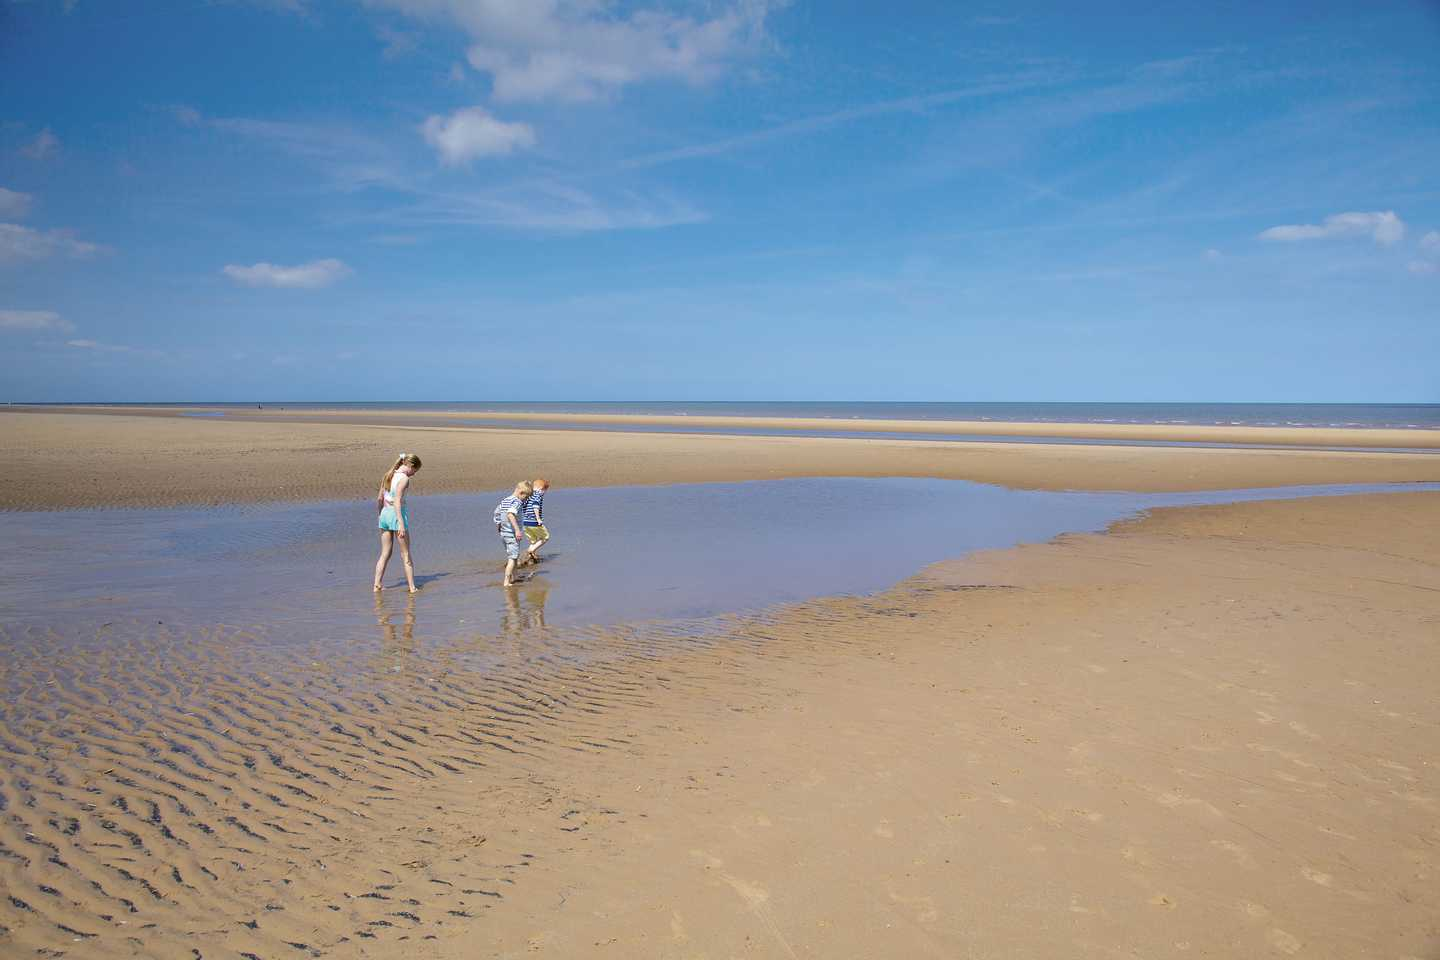 Children walking along the sand